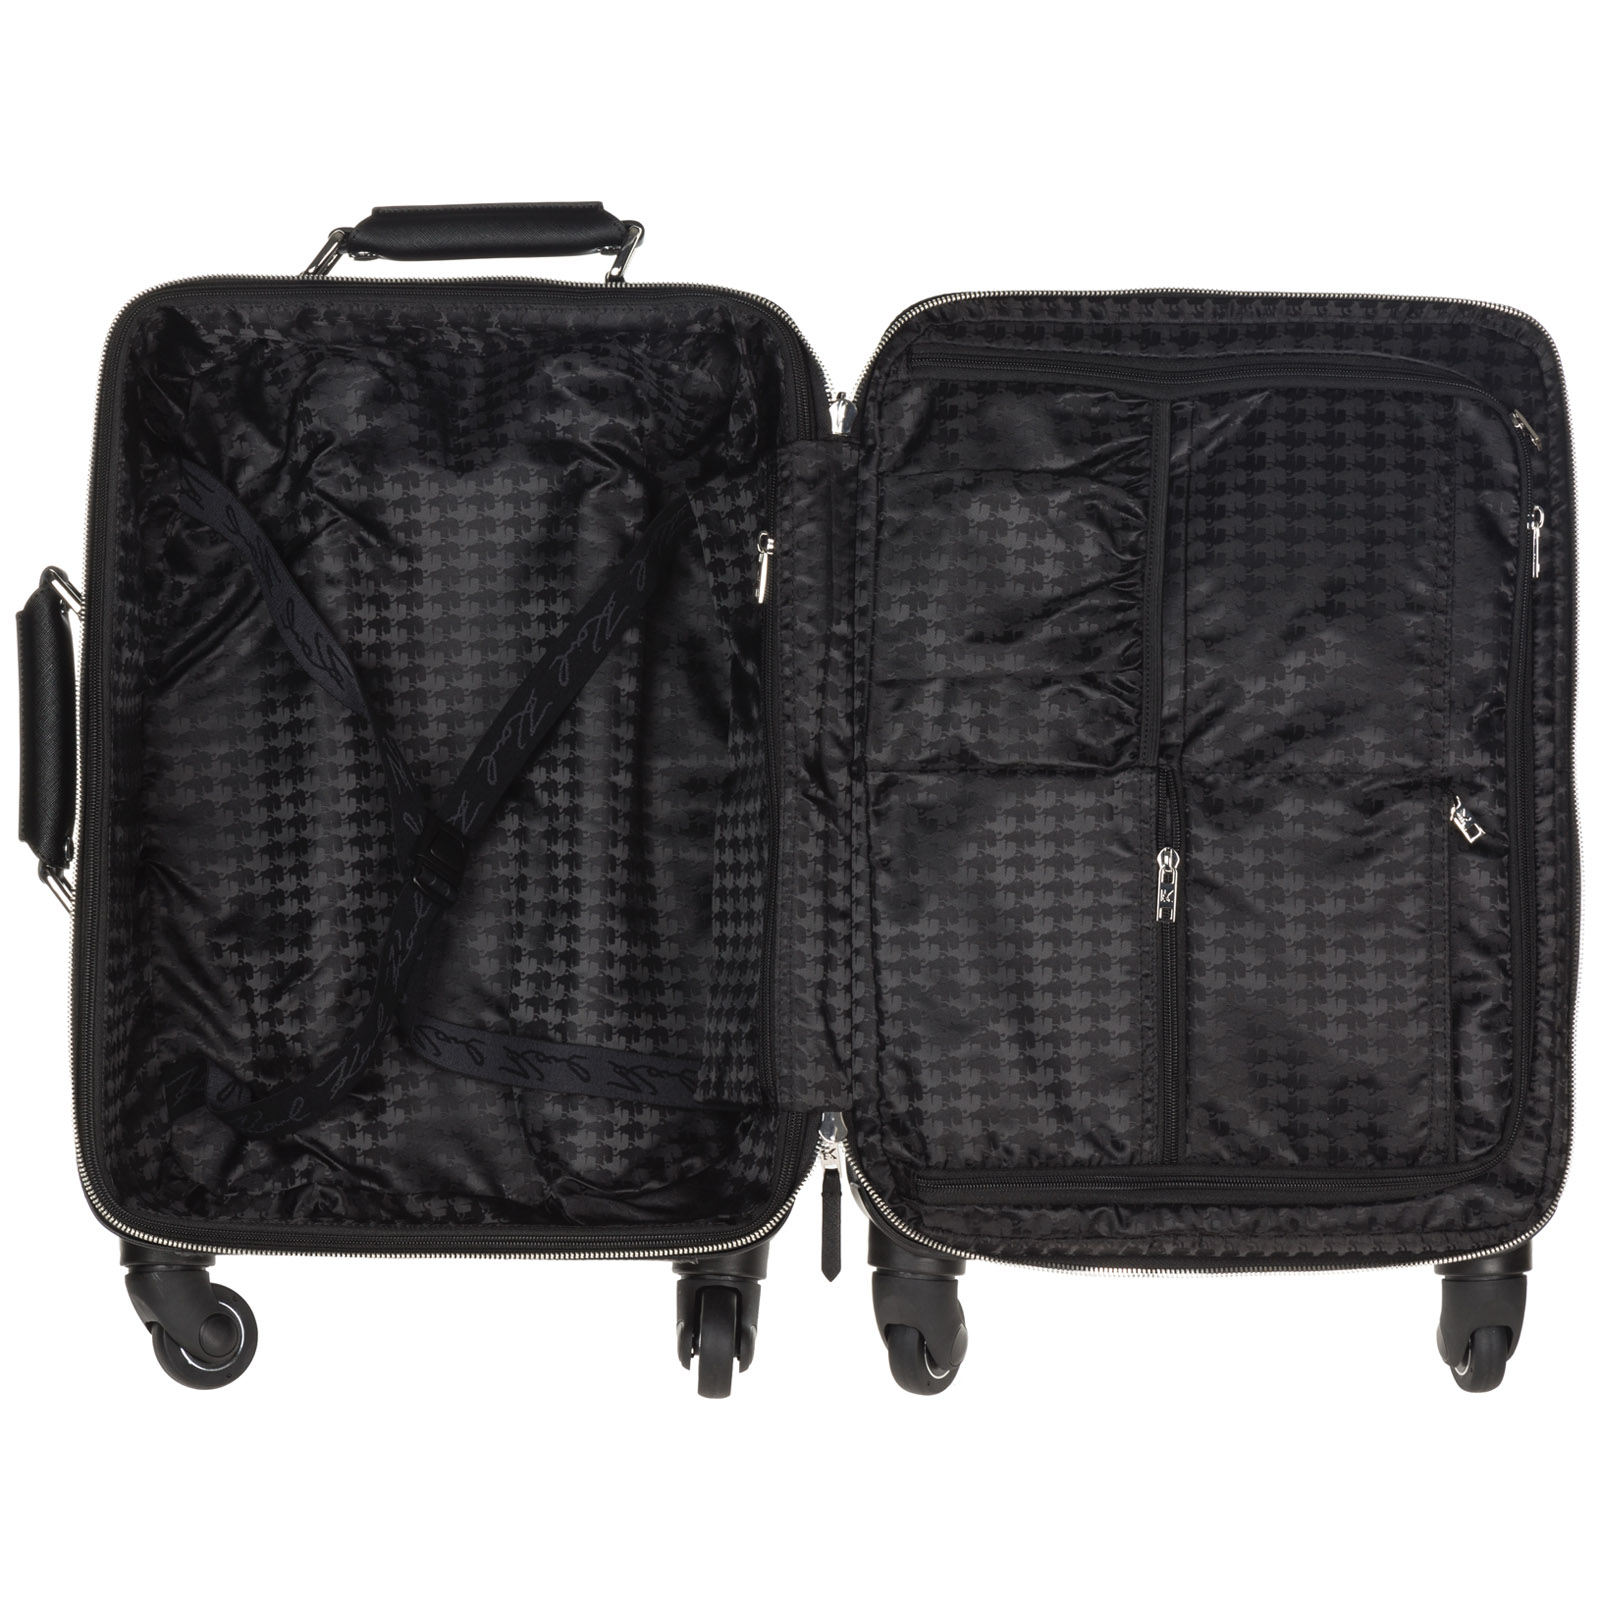 Women's suitcase trolley  k/ikonik